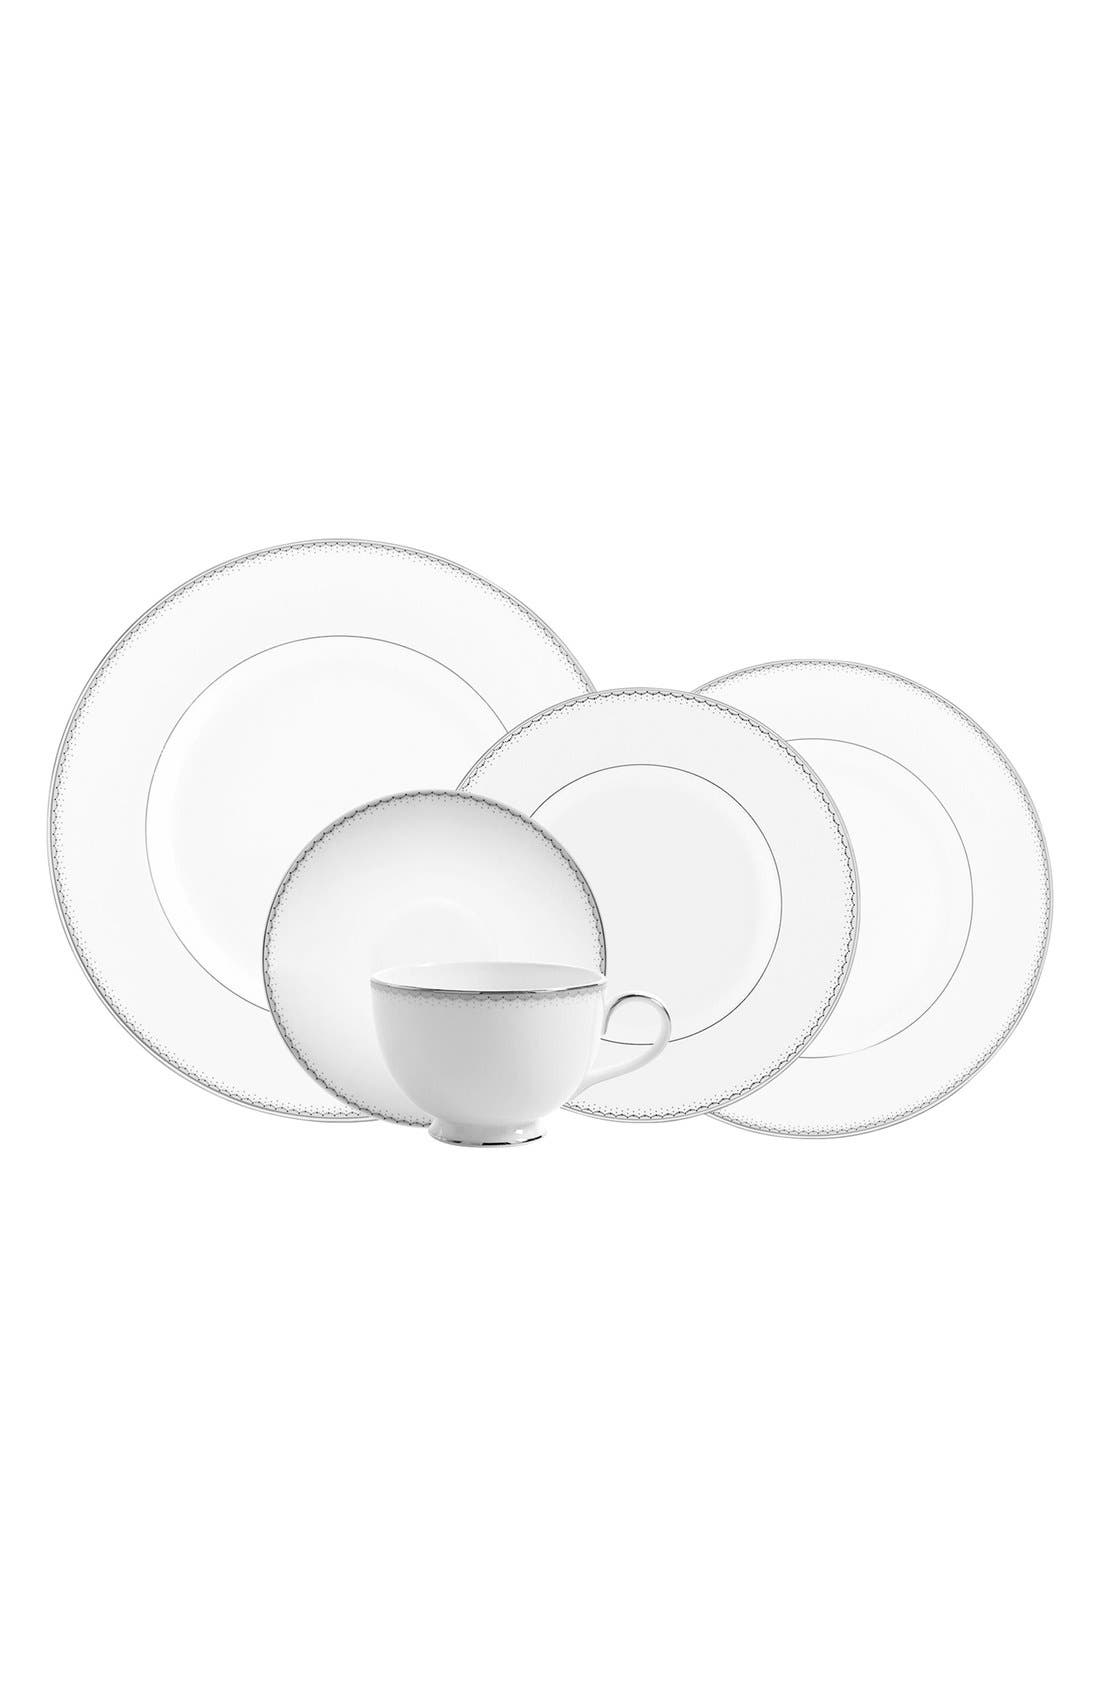 Main Image - Monique Lhuillier Waterford 'Dentelle' 5-Piece Bone China Dinnerware Place Setting